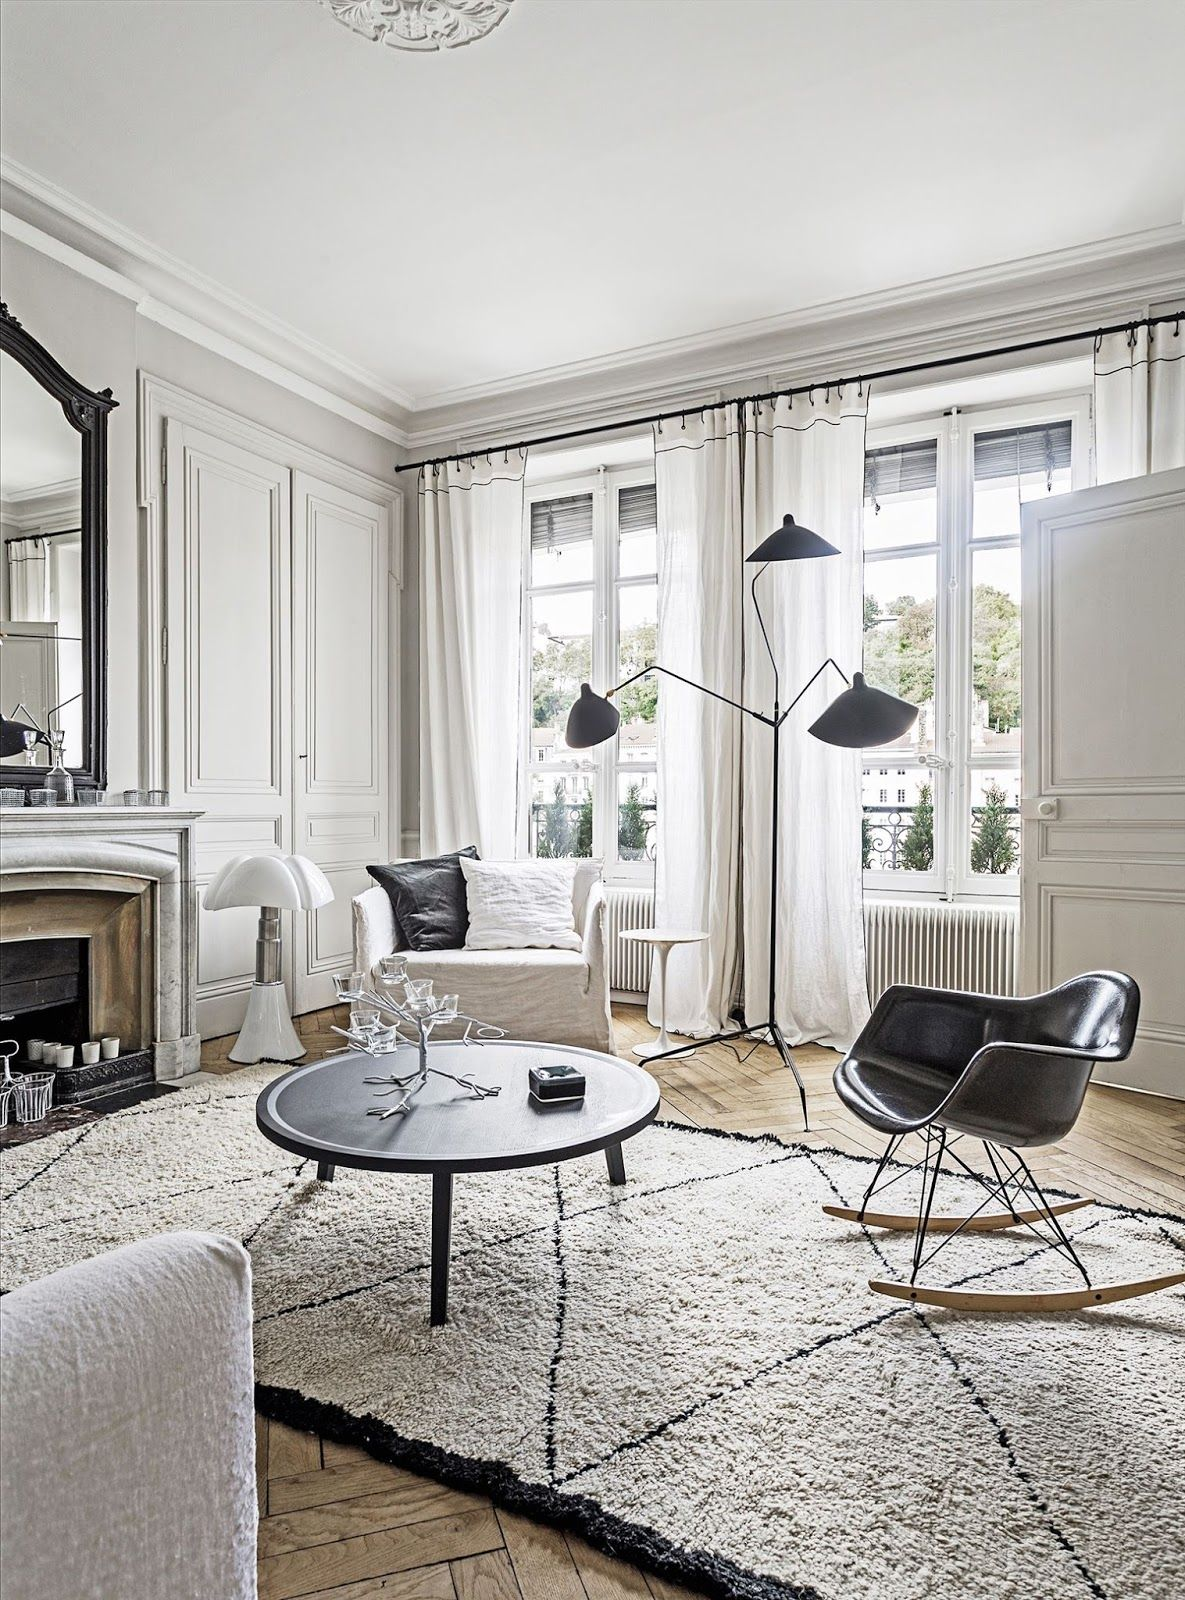 Decor Inspiration : French-Style City Apartment | Pinterest | French ...